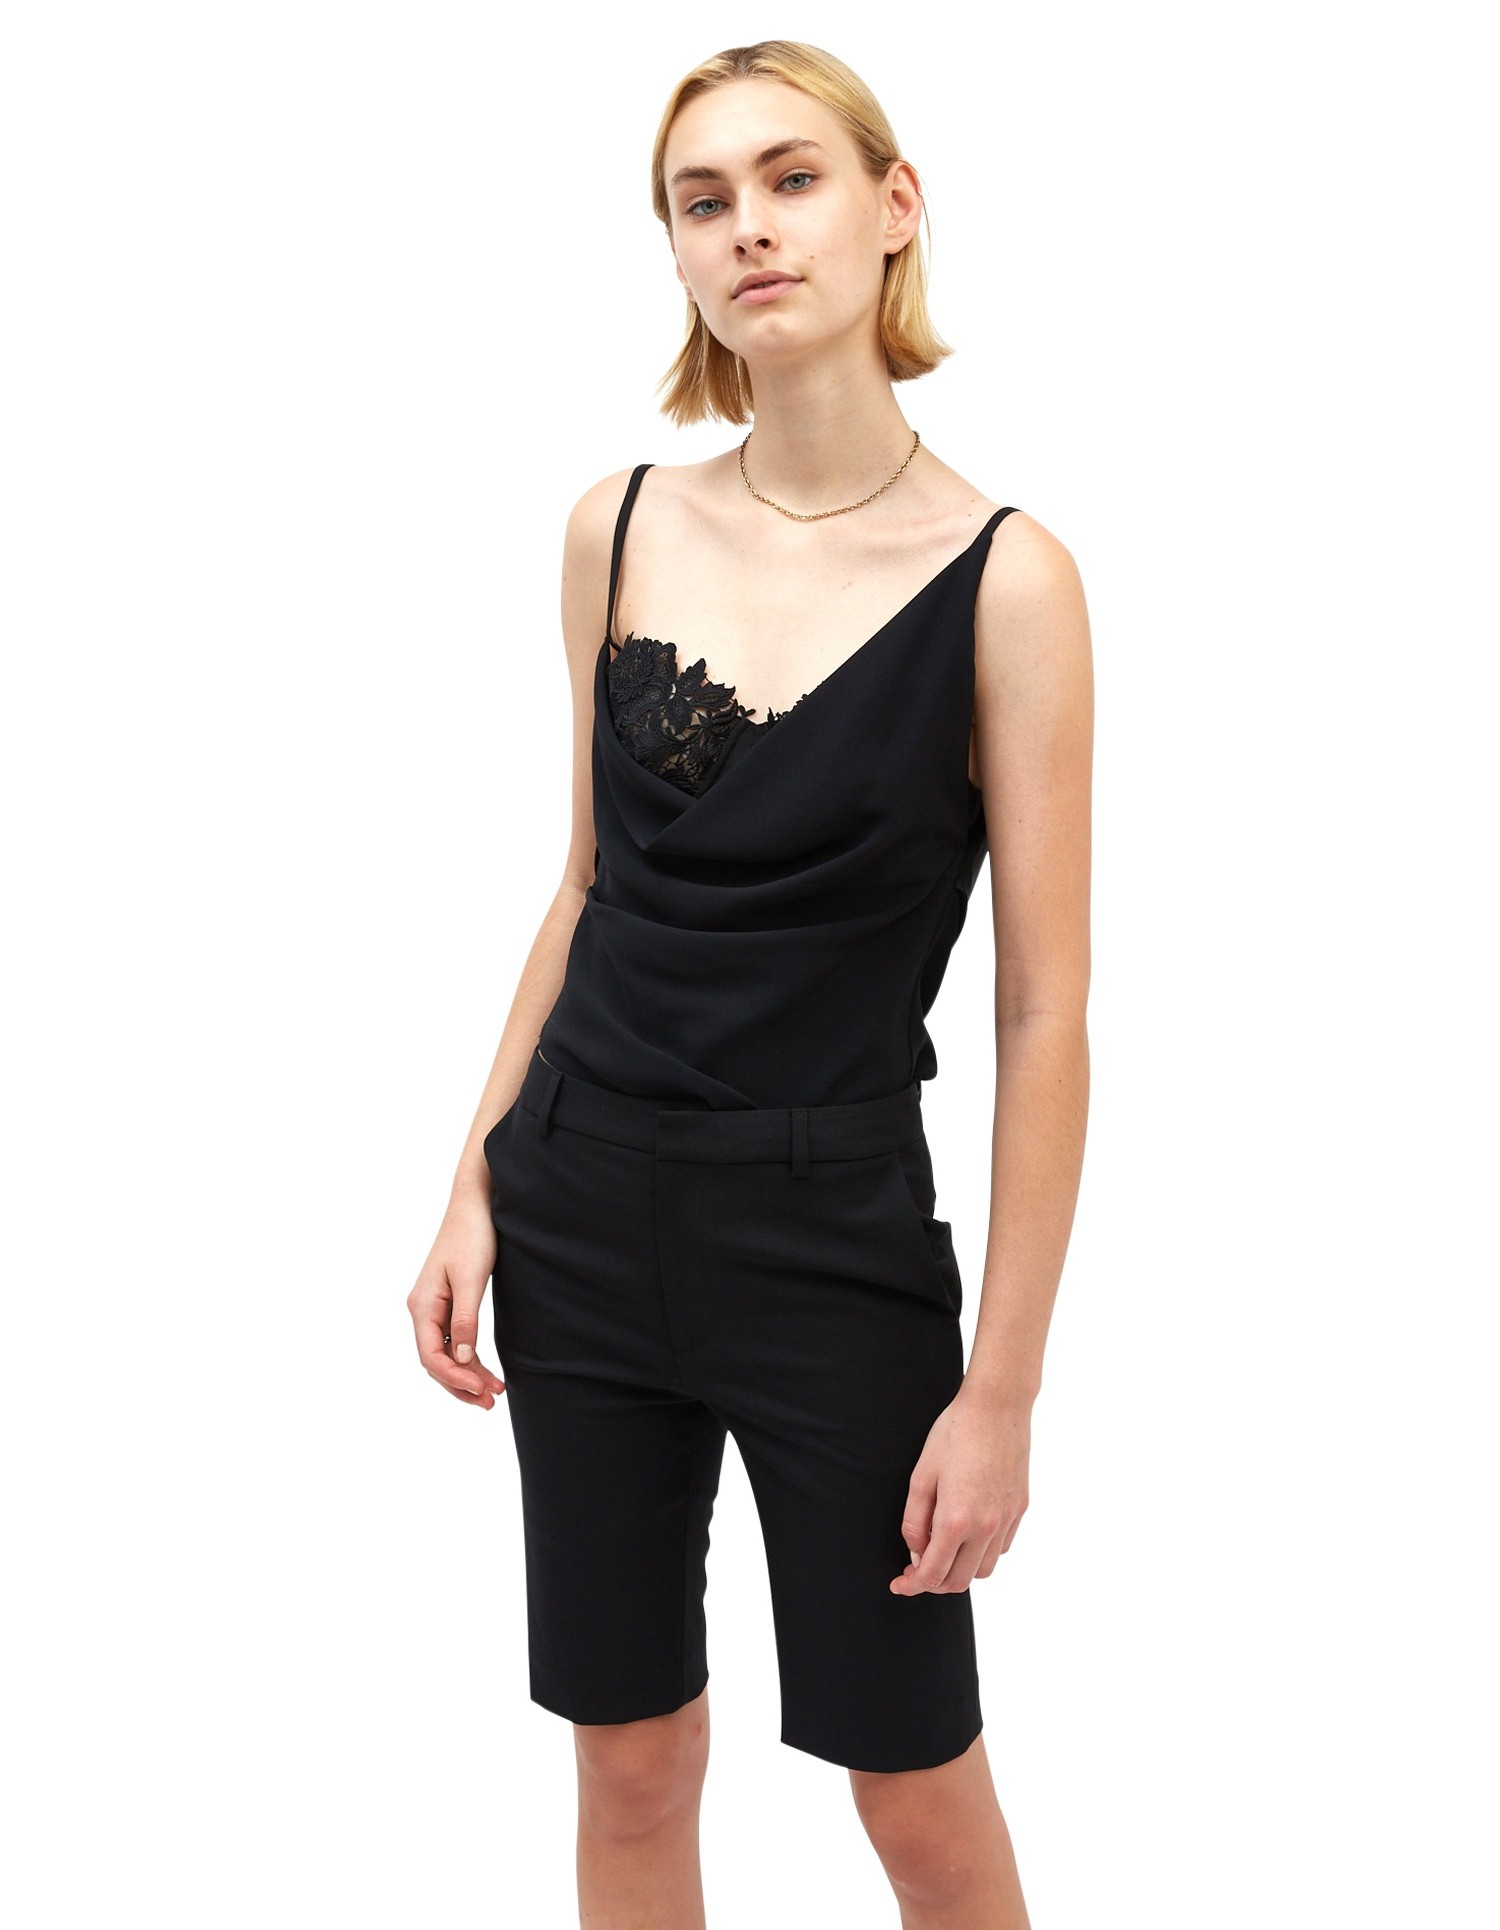 MONSE Slipped Camisole in Black on Model Front View